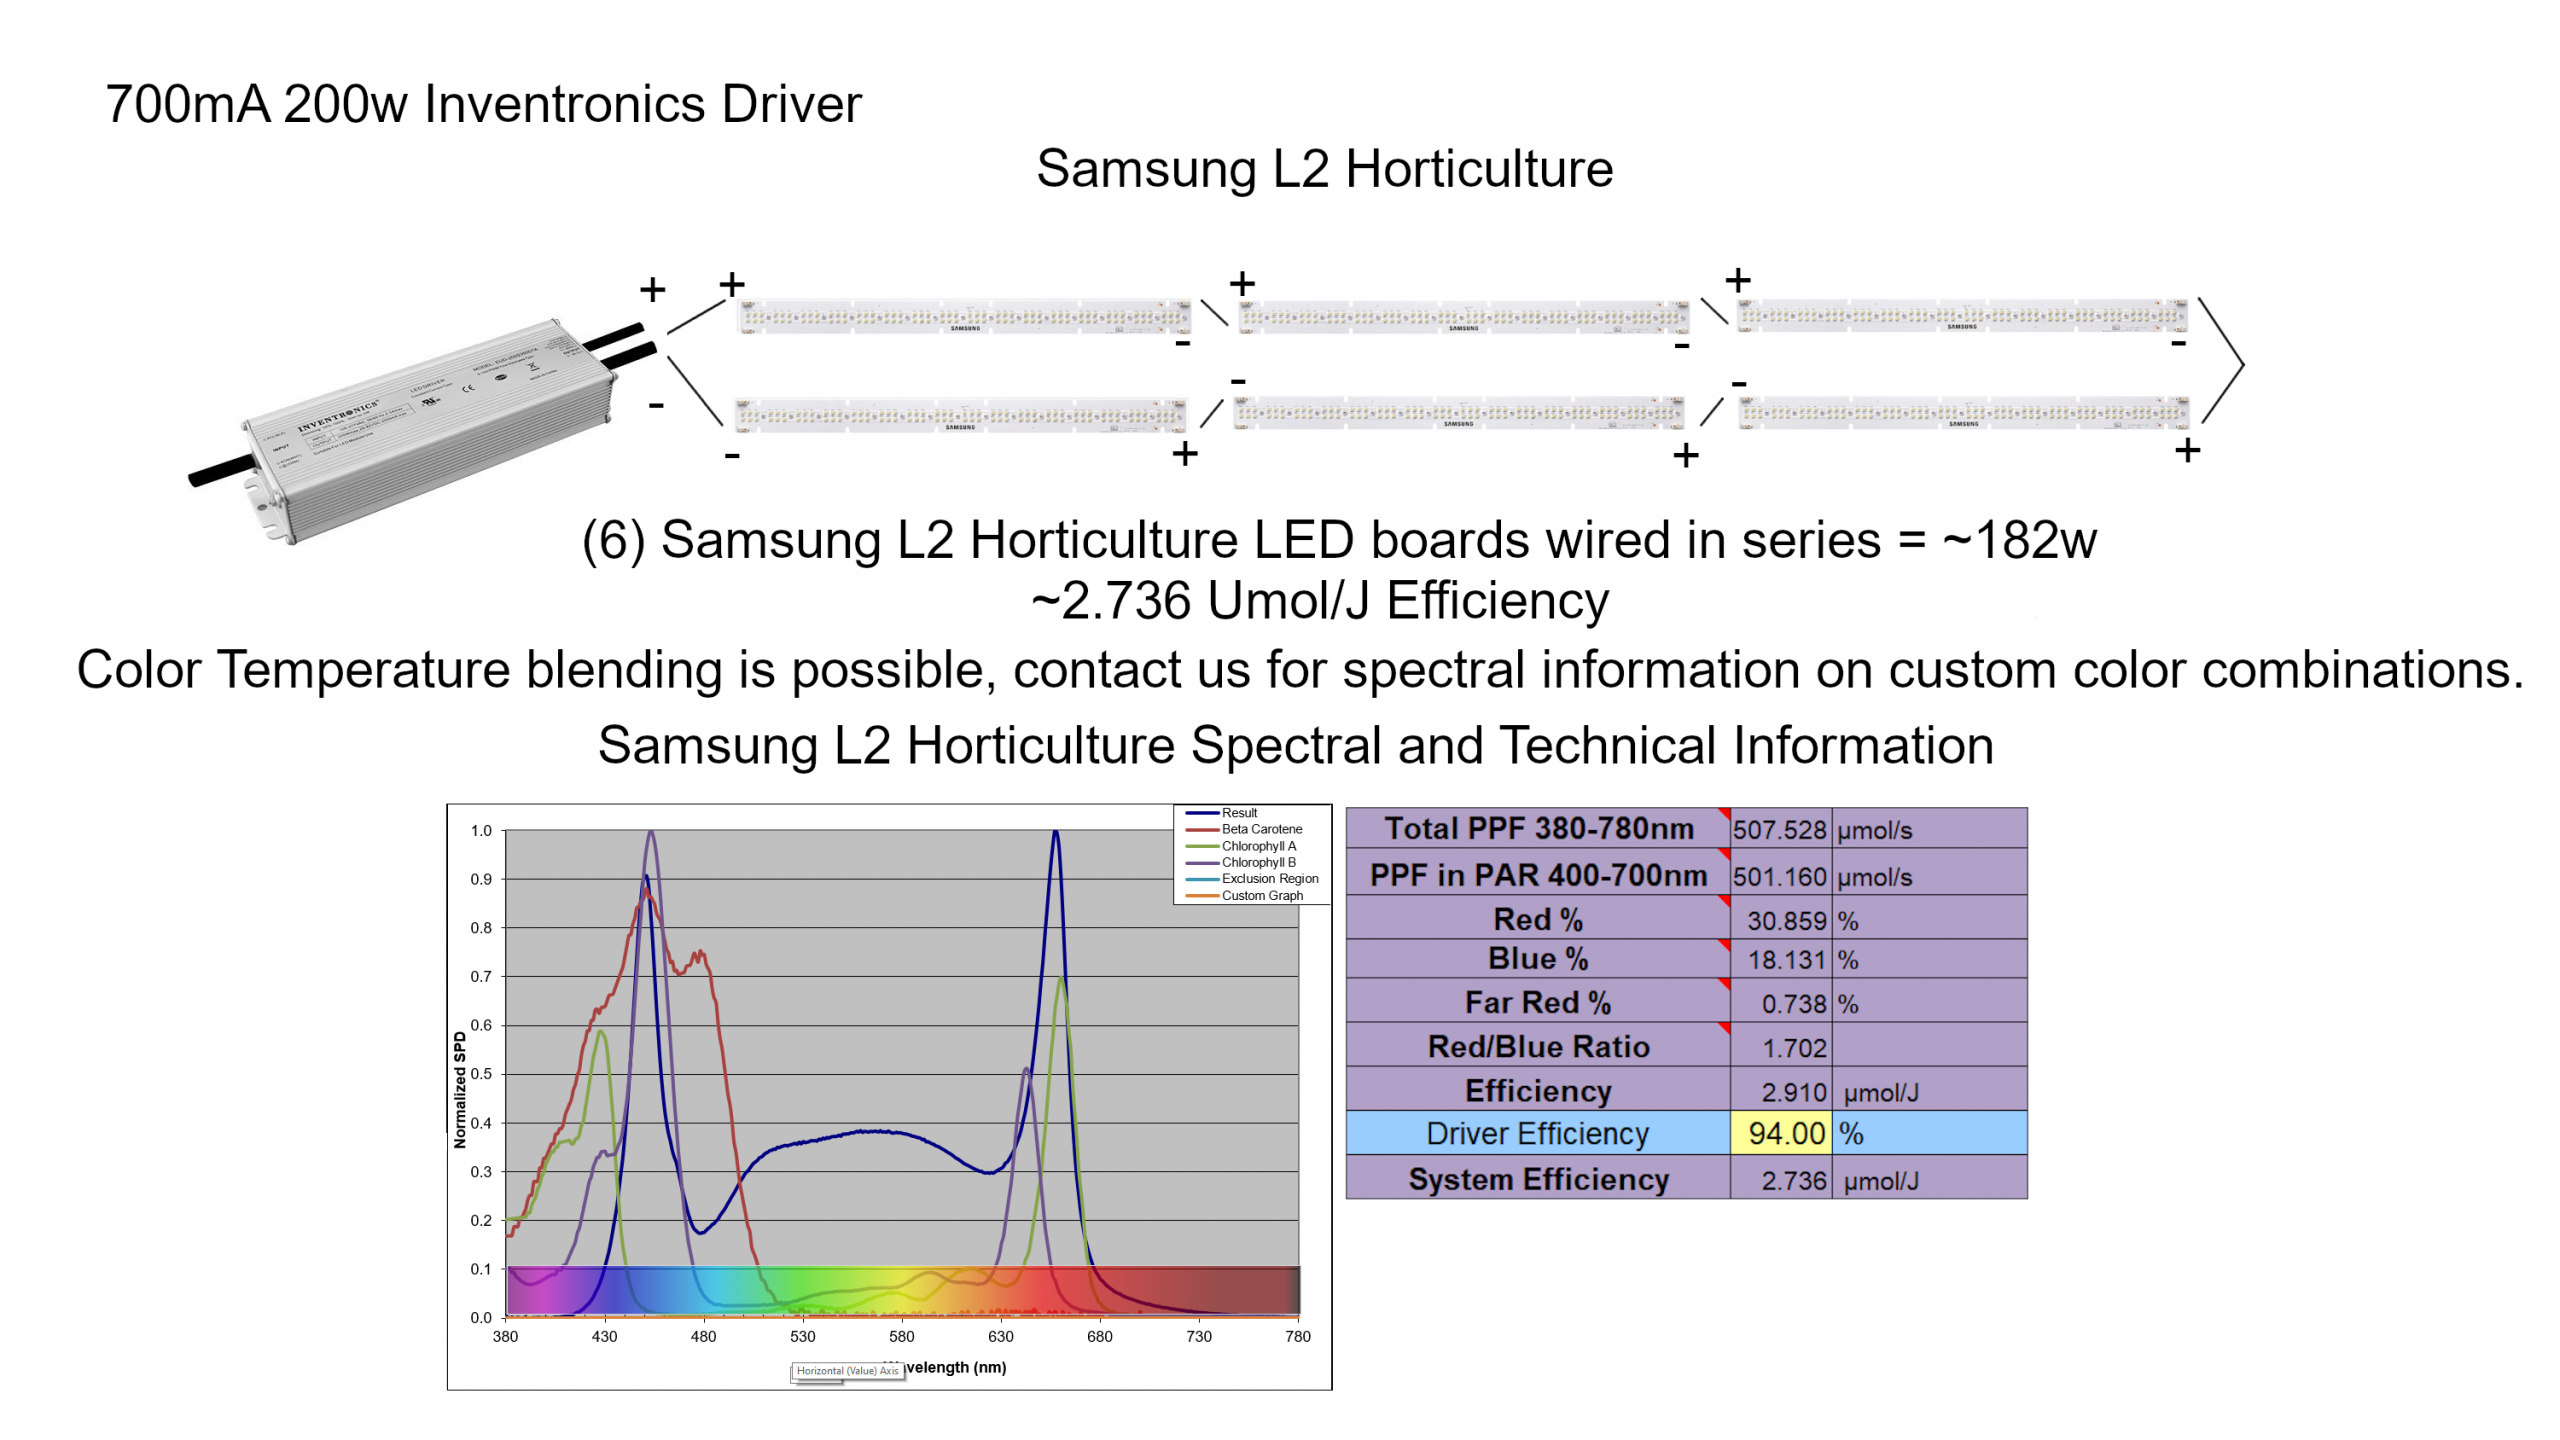 Samsung L2 Horticulture LED Wiring Diagram 200w